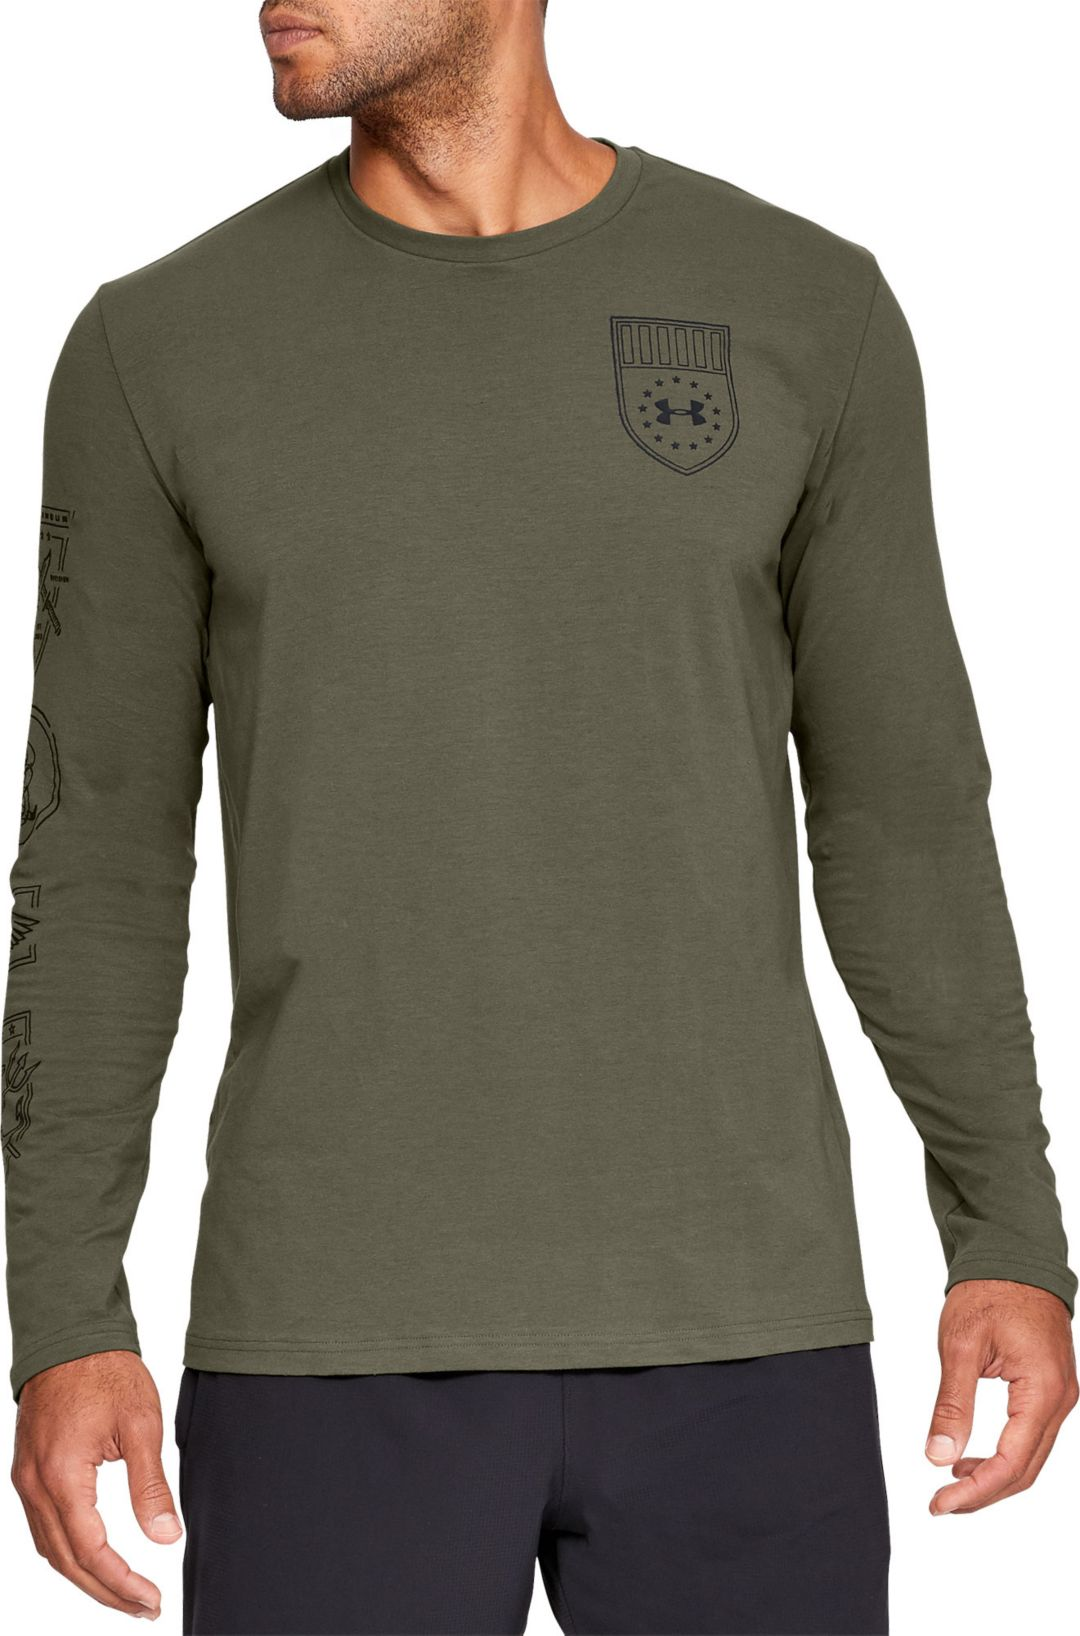 3f726f76 Under Armour Men's Tactical Graphic Long Sleeve T-Shirt | DICK'S ...